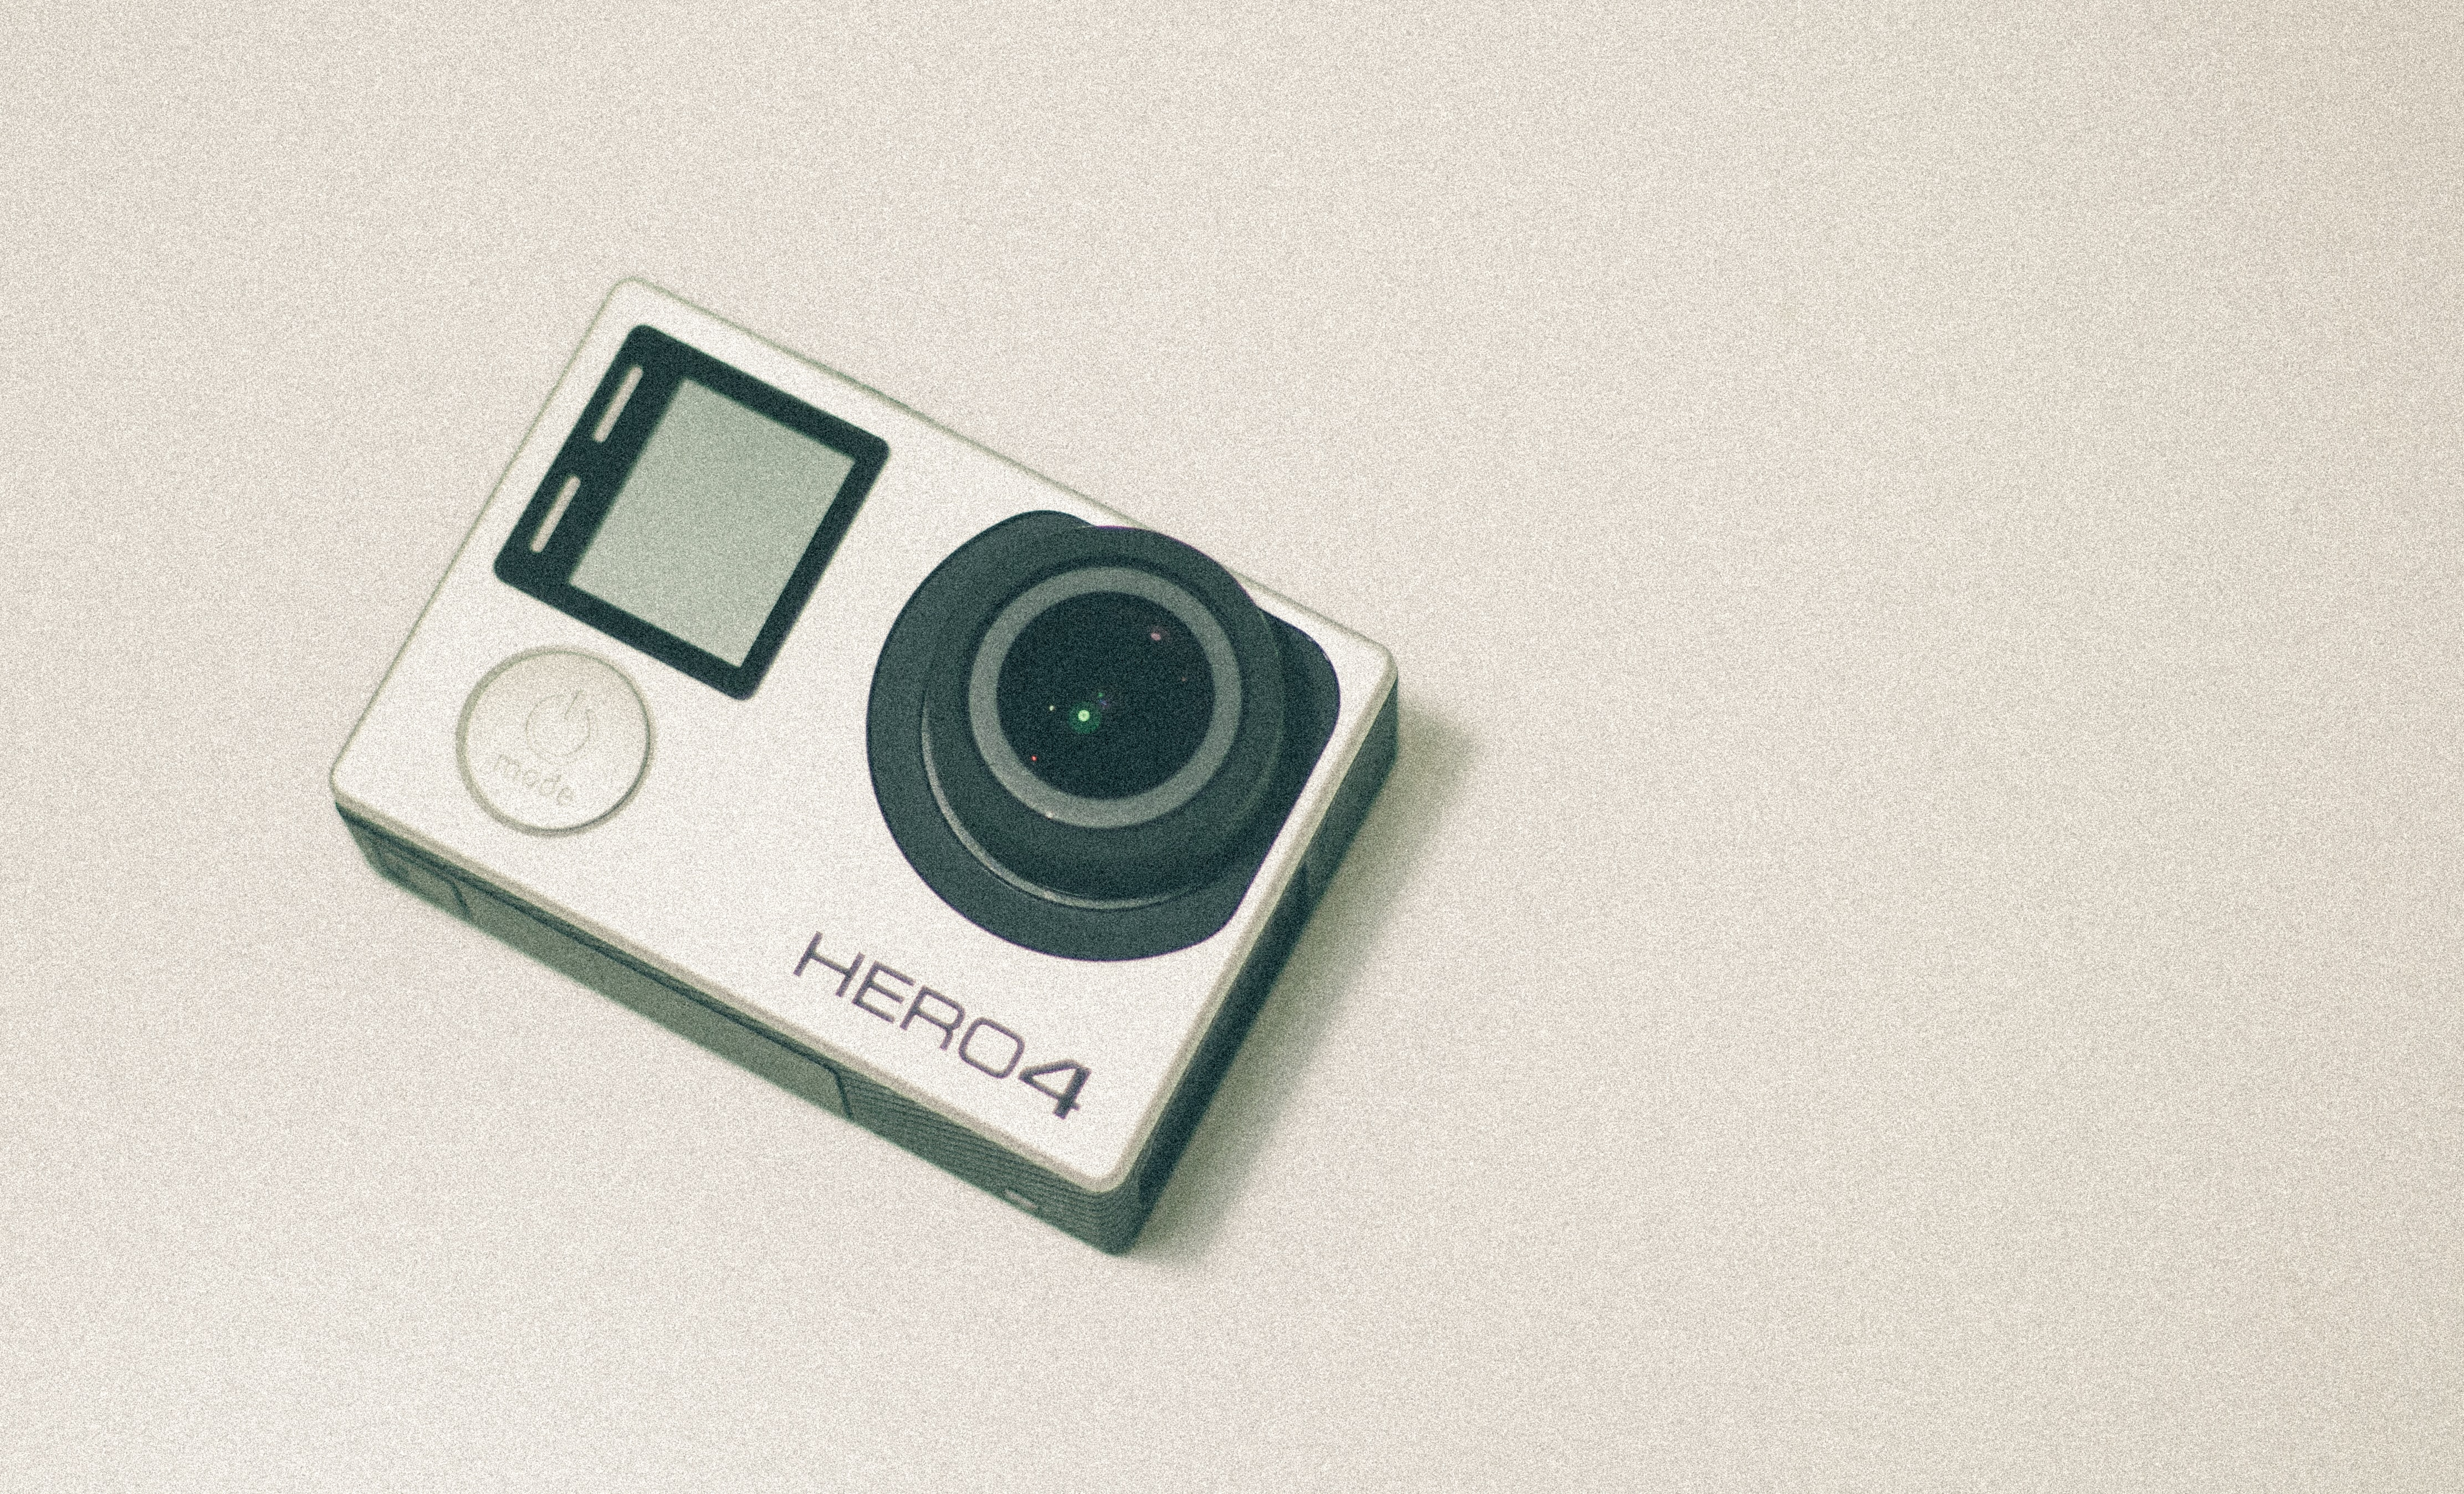 A GoPro Hero4 camera sitting on a white surface.